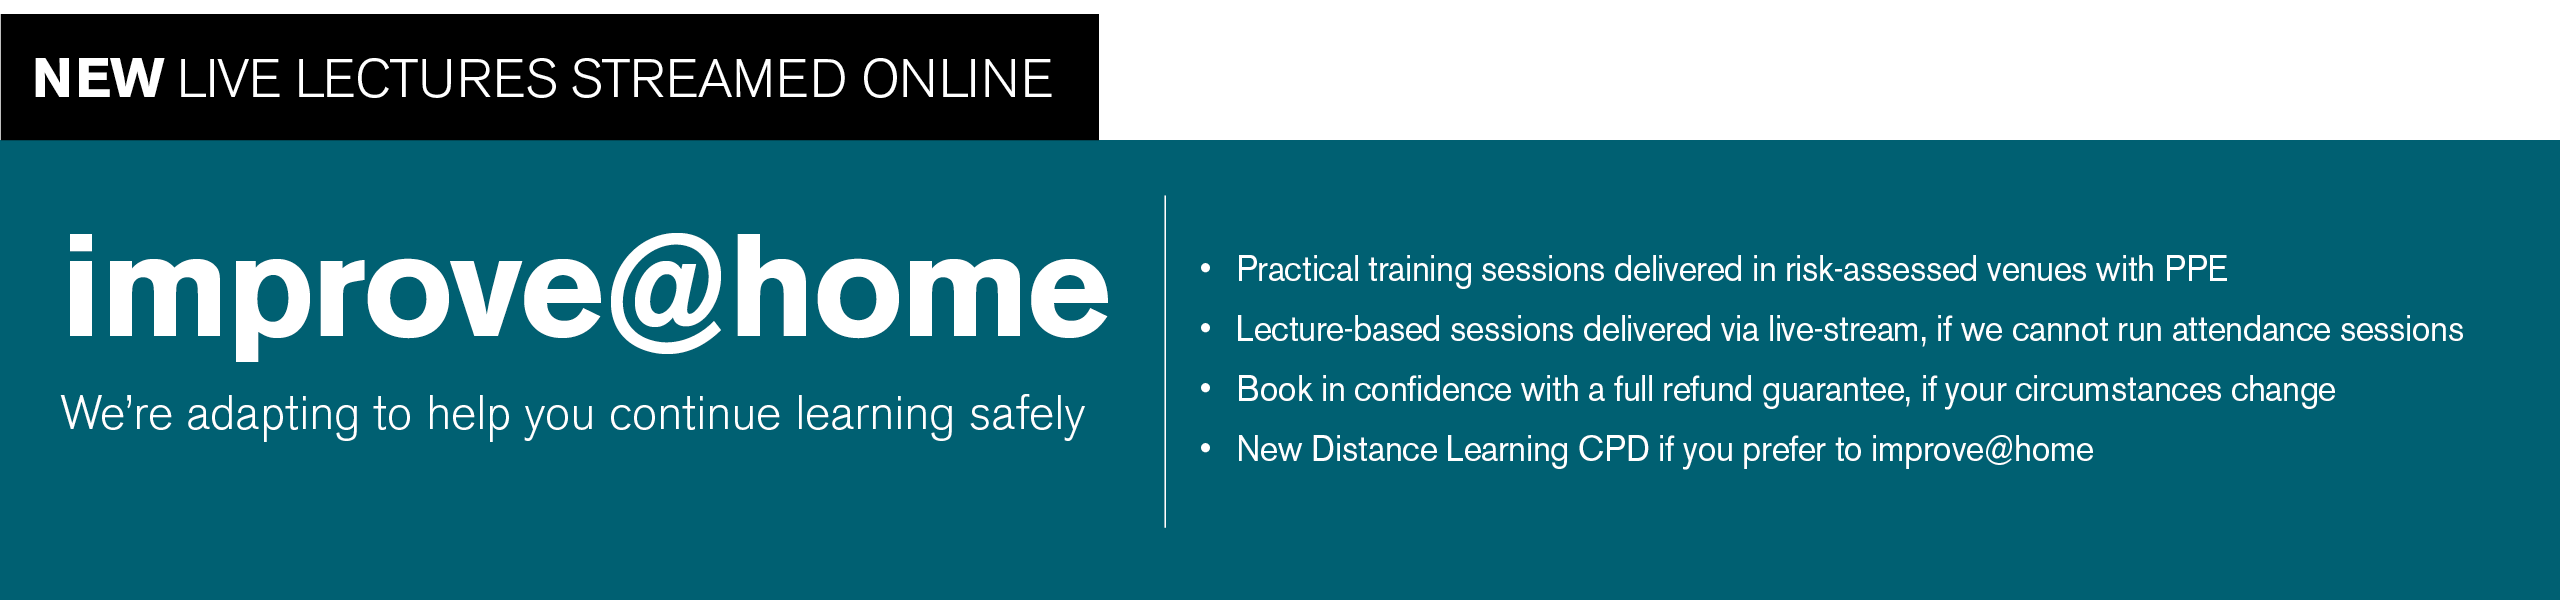 improve@home - adapting to help you continue learning safely